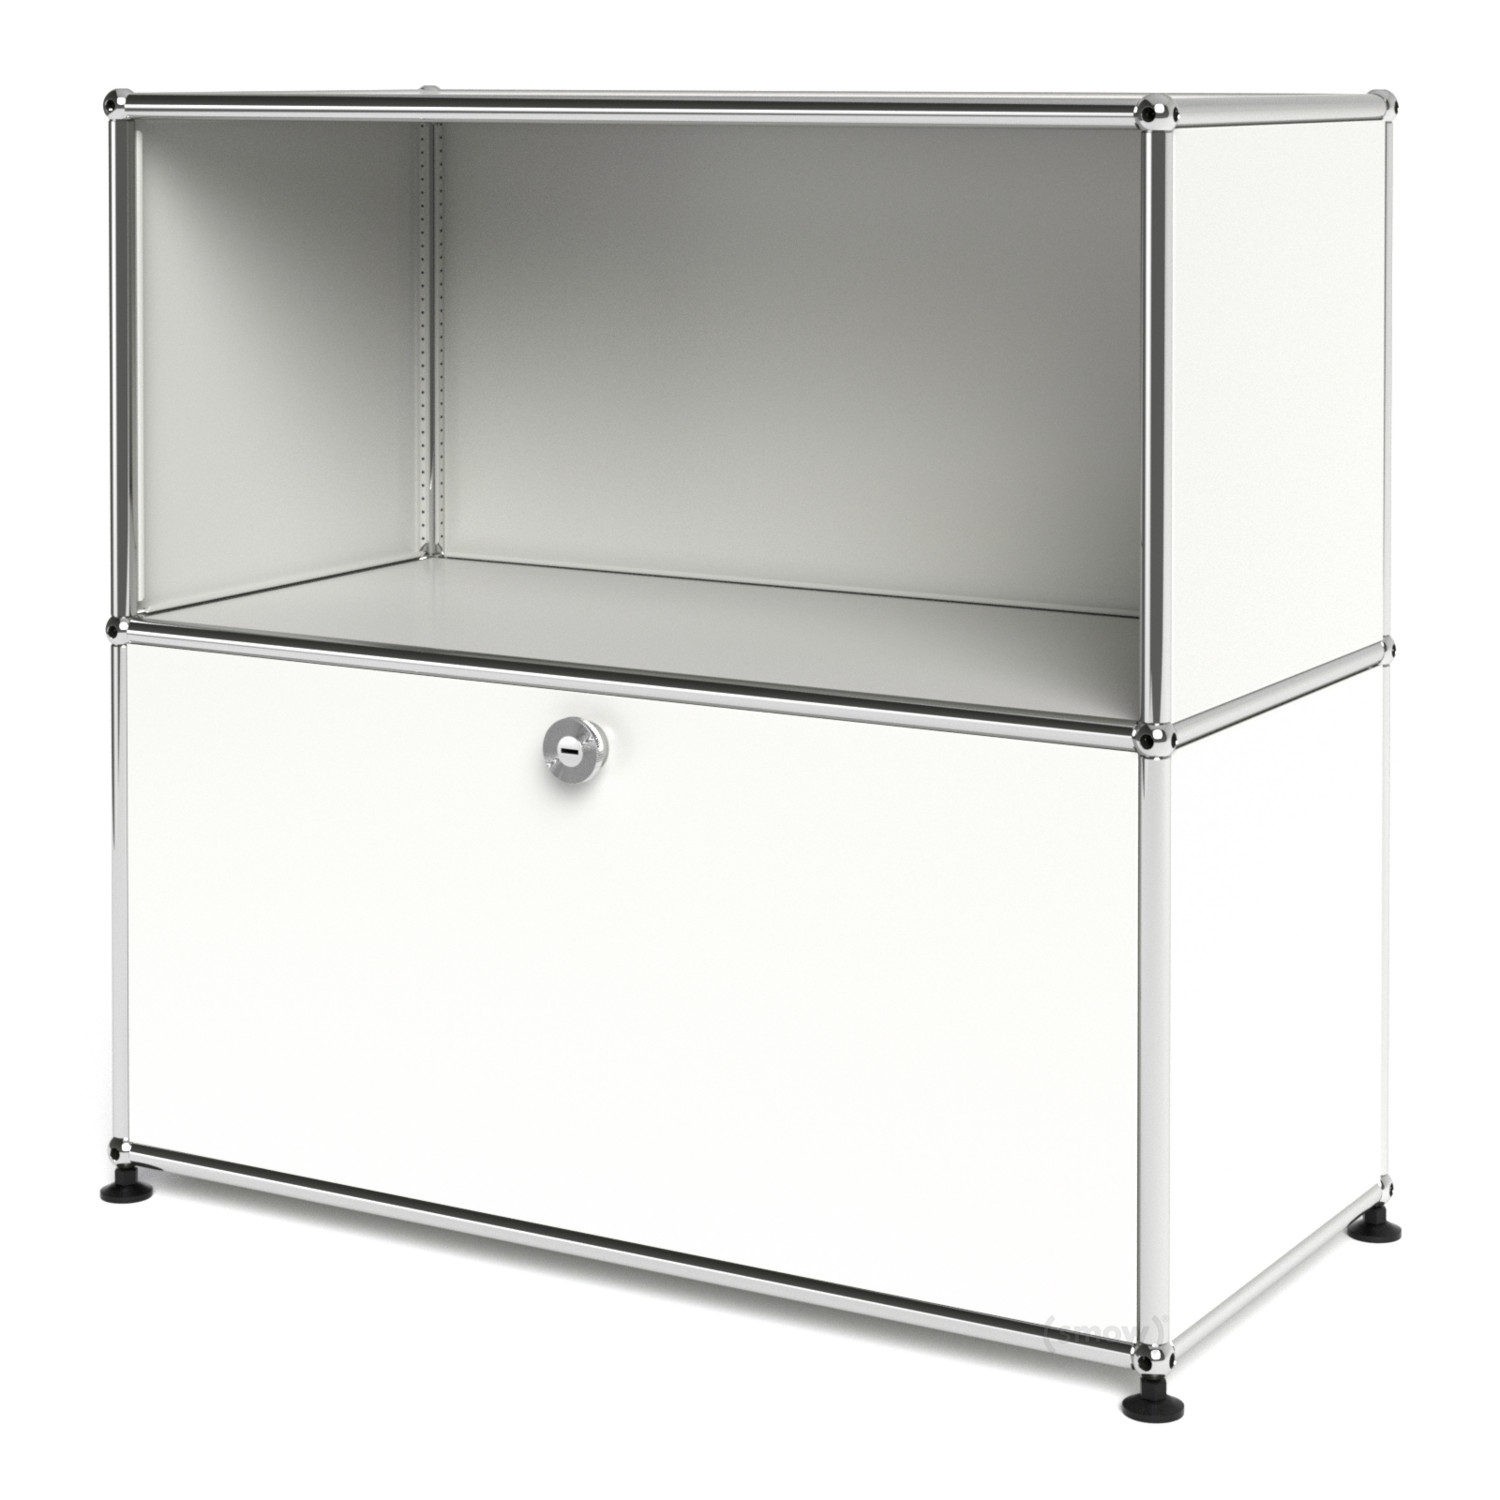 Usm haller sideboard m customisable pure white ral 9010 for Sideboard usm